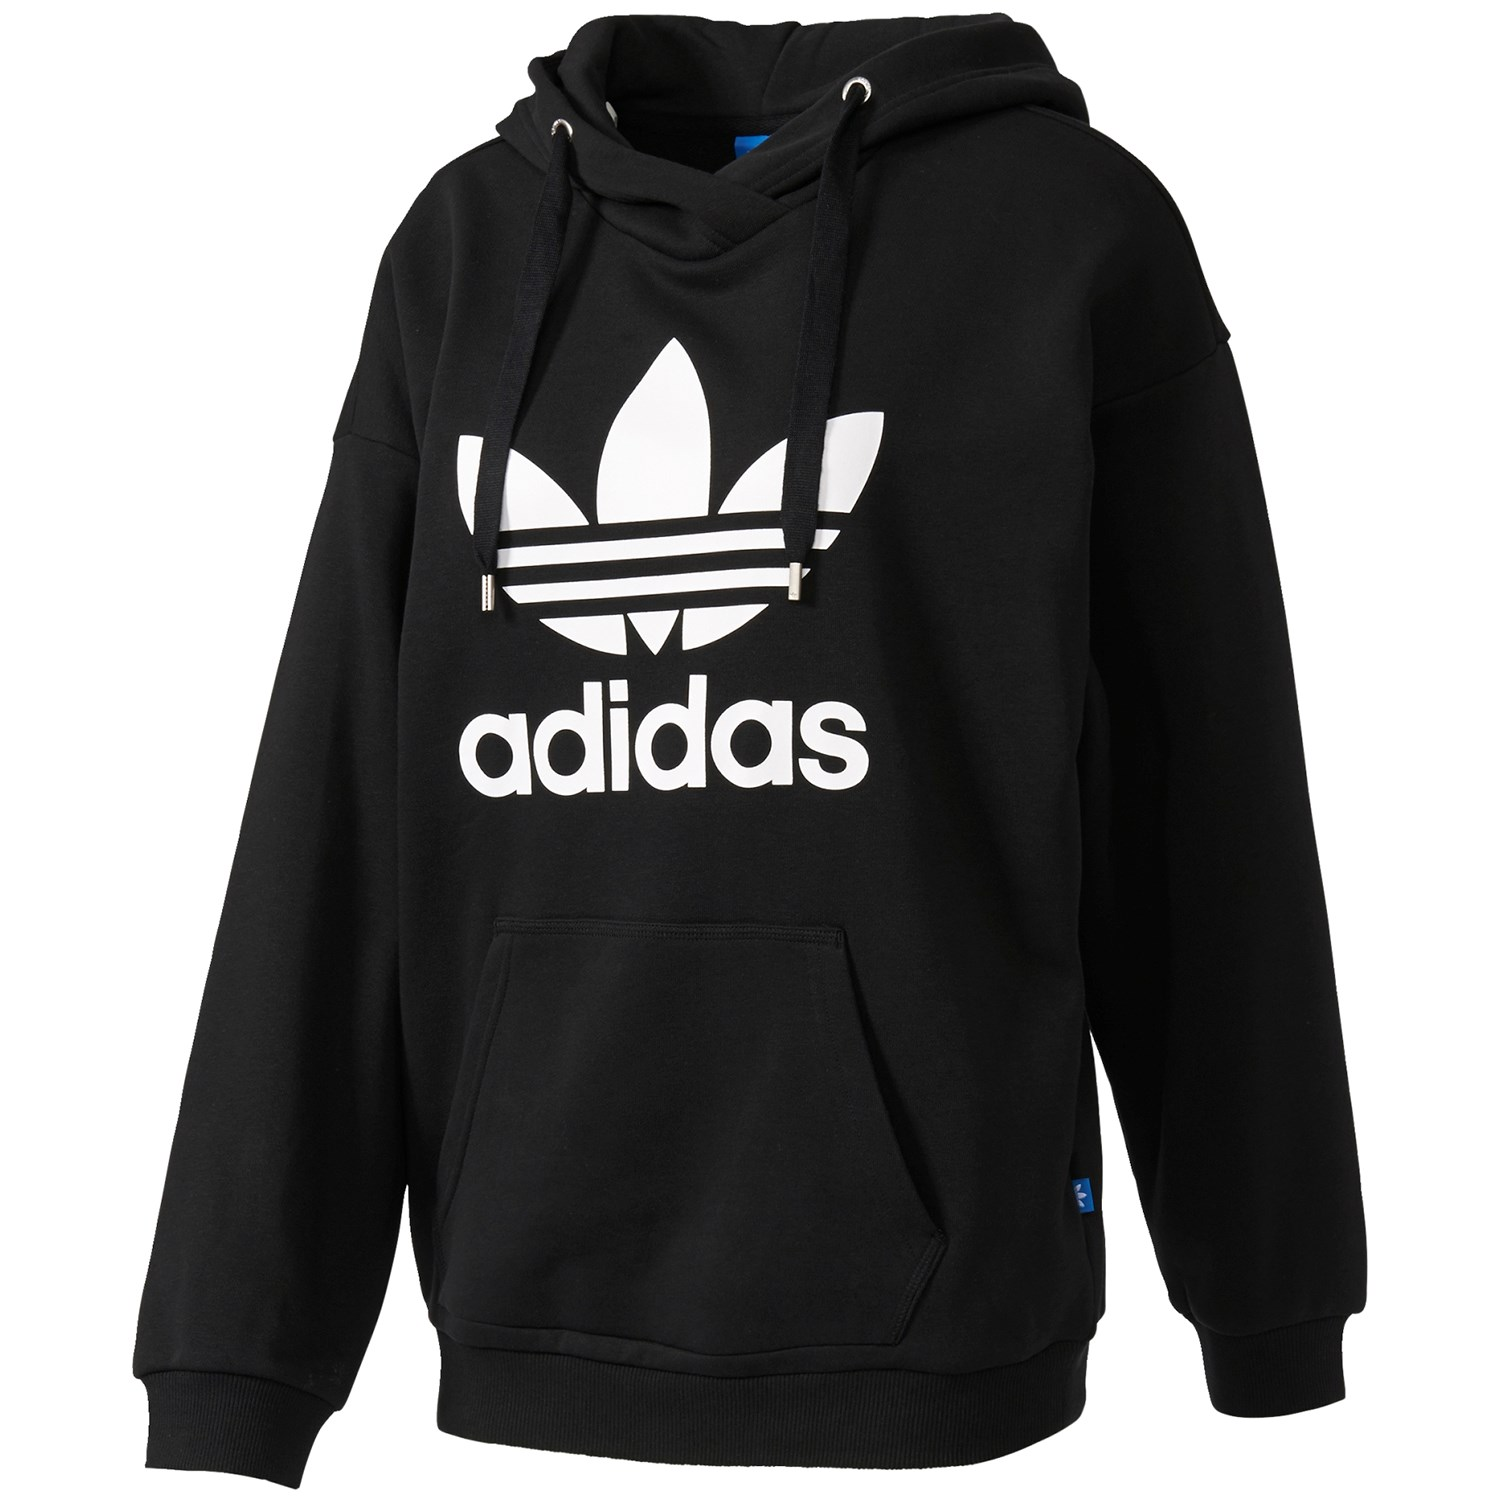 adidas sweater women's